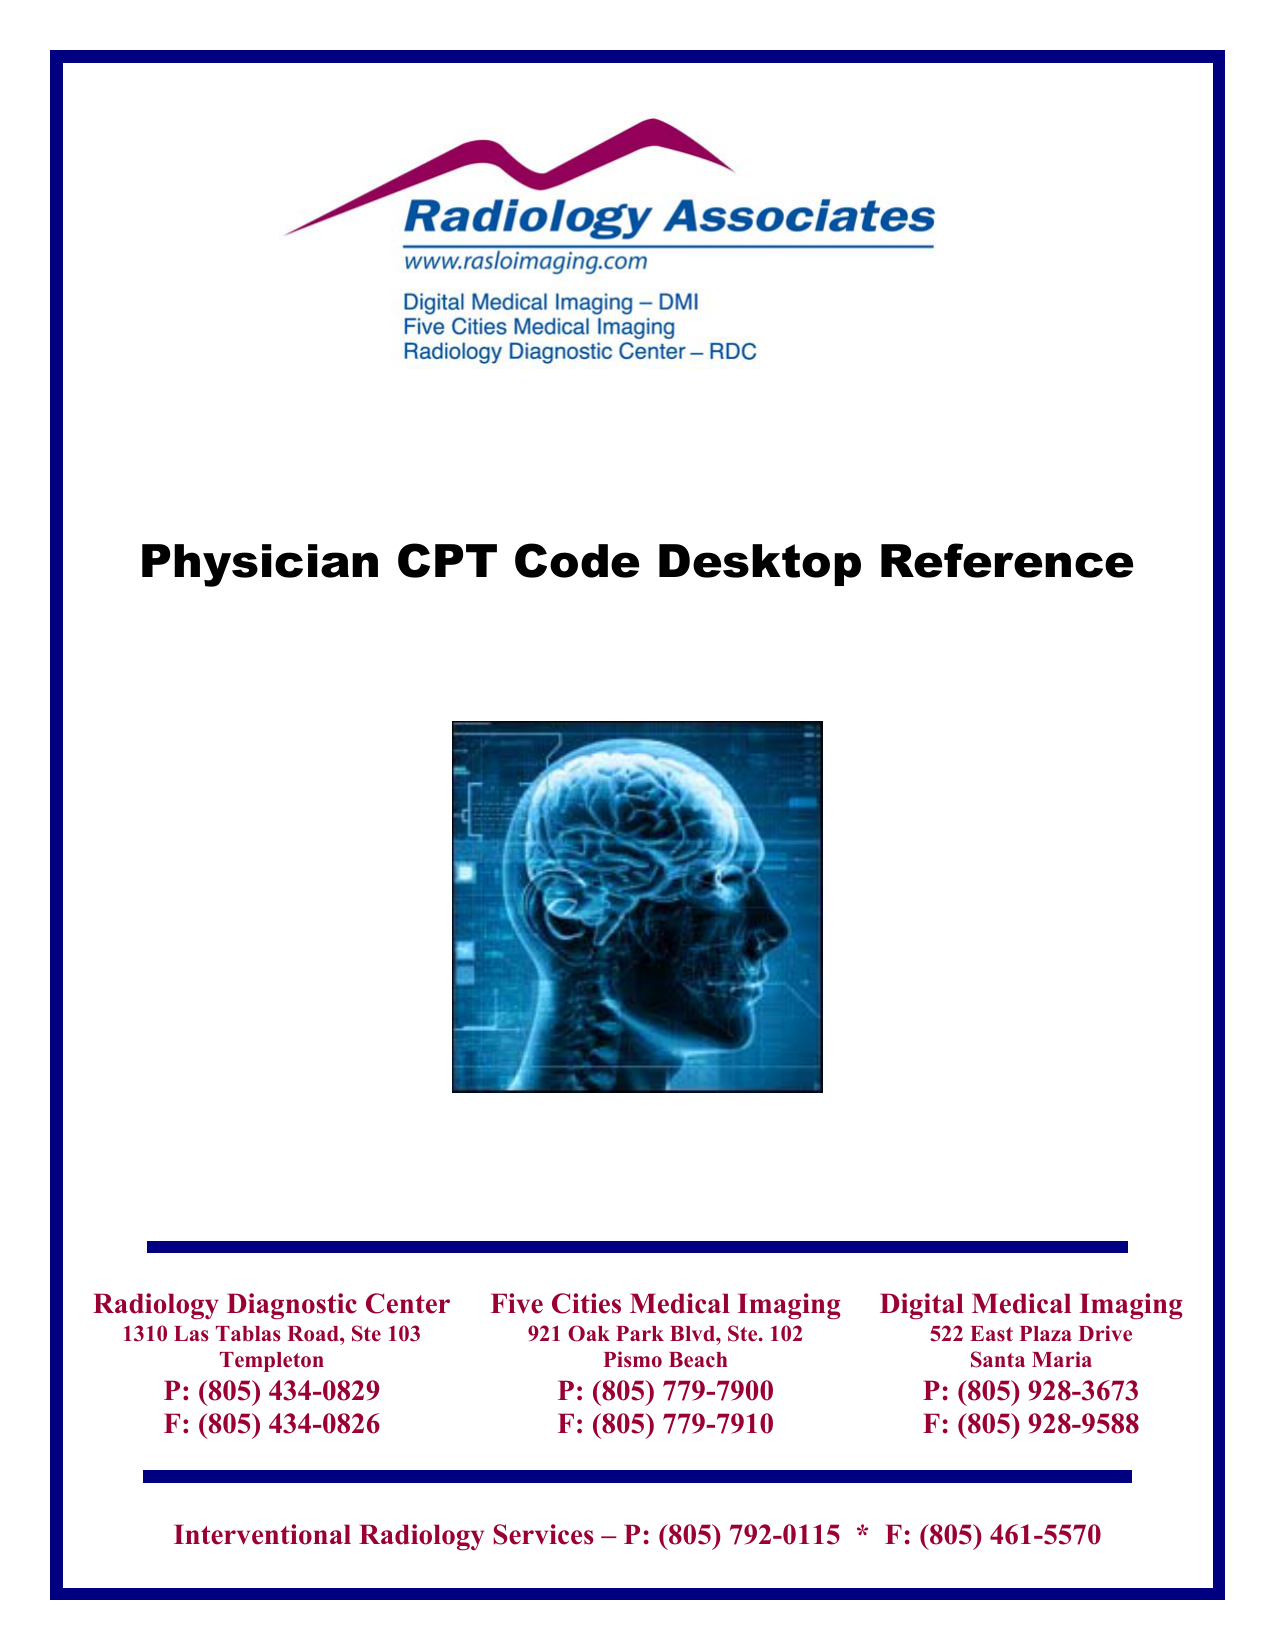 Physician CPT Code Desktop Reference